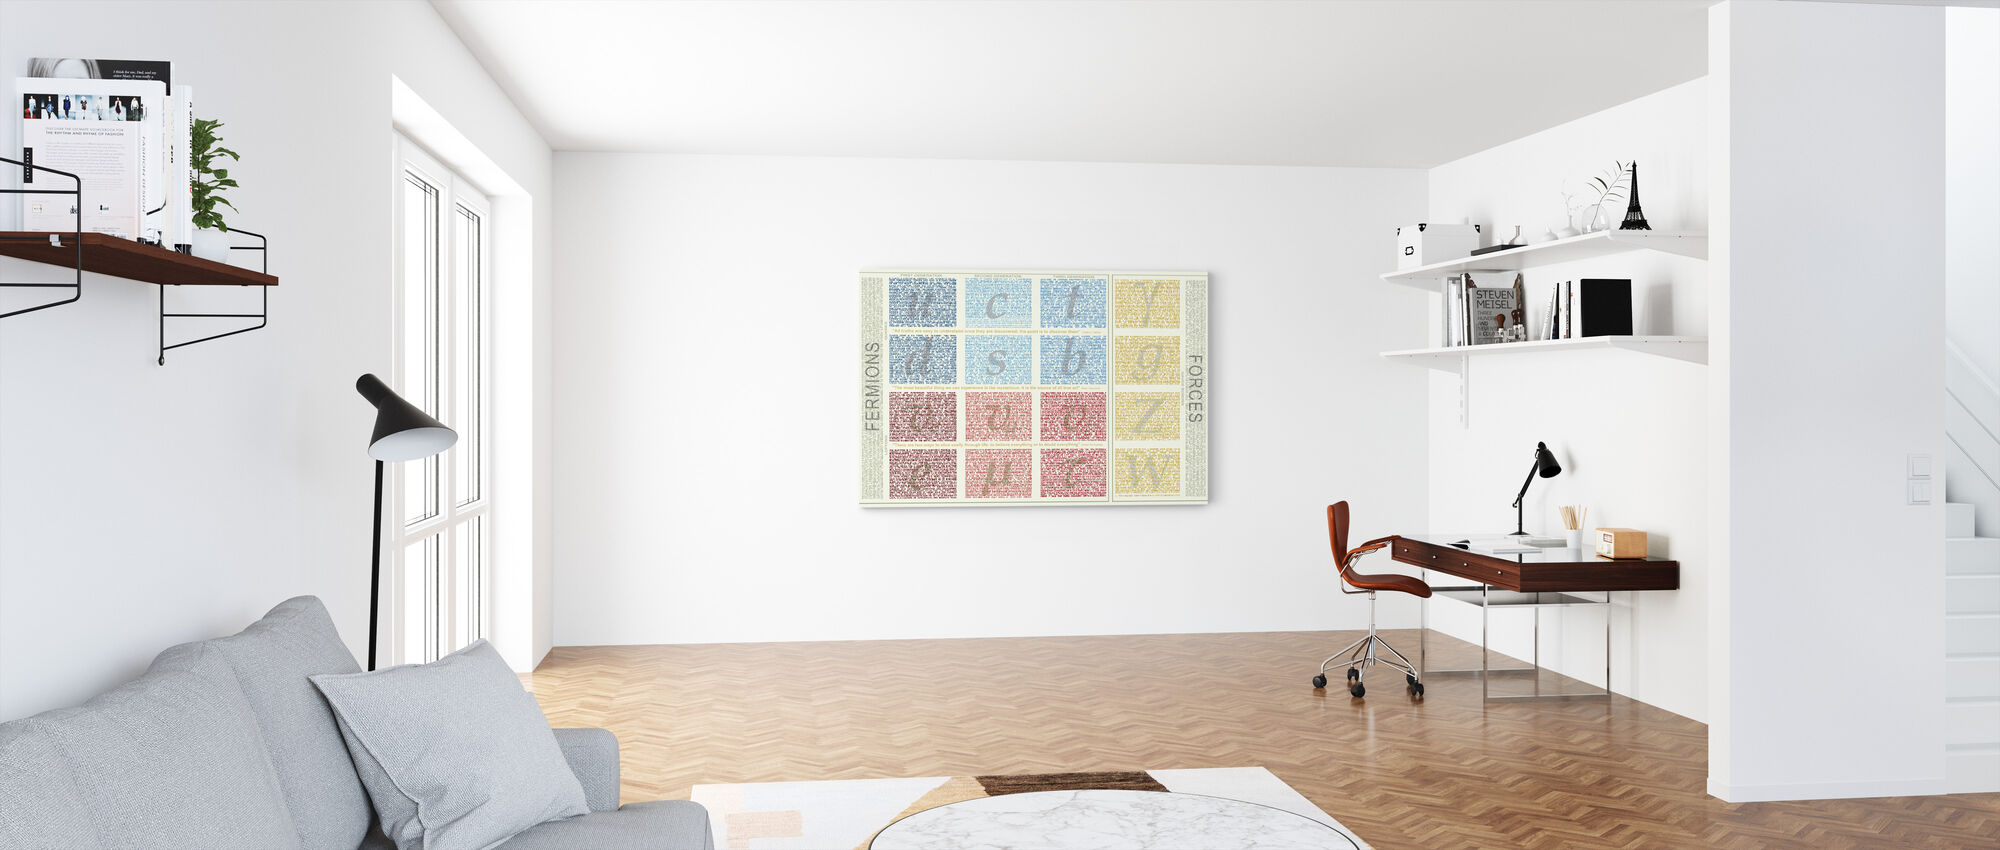 Standard Model of Particle Physics - Canvas print - Office